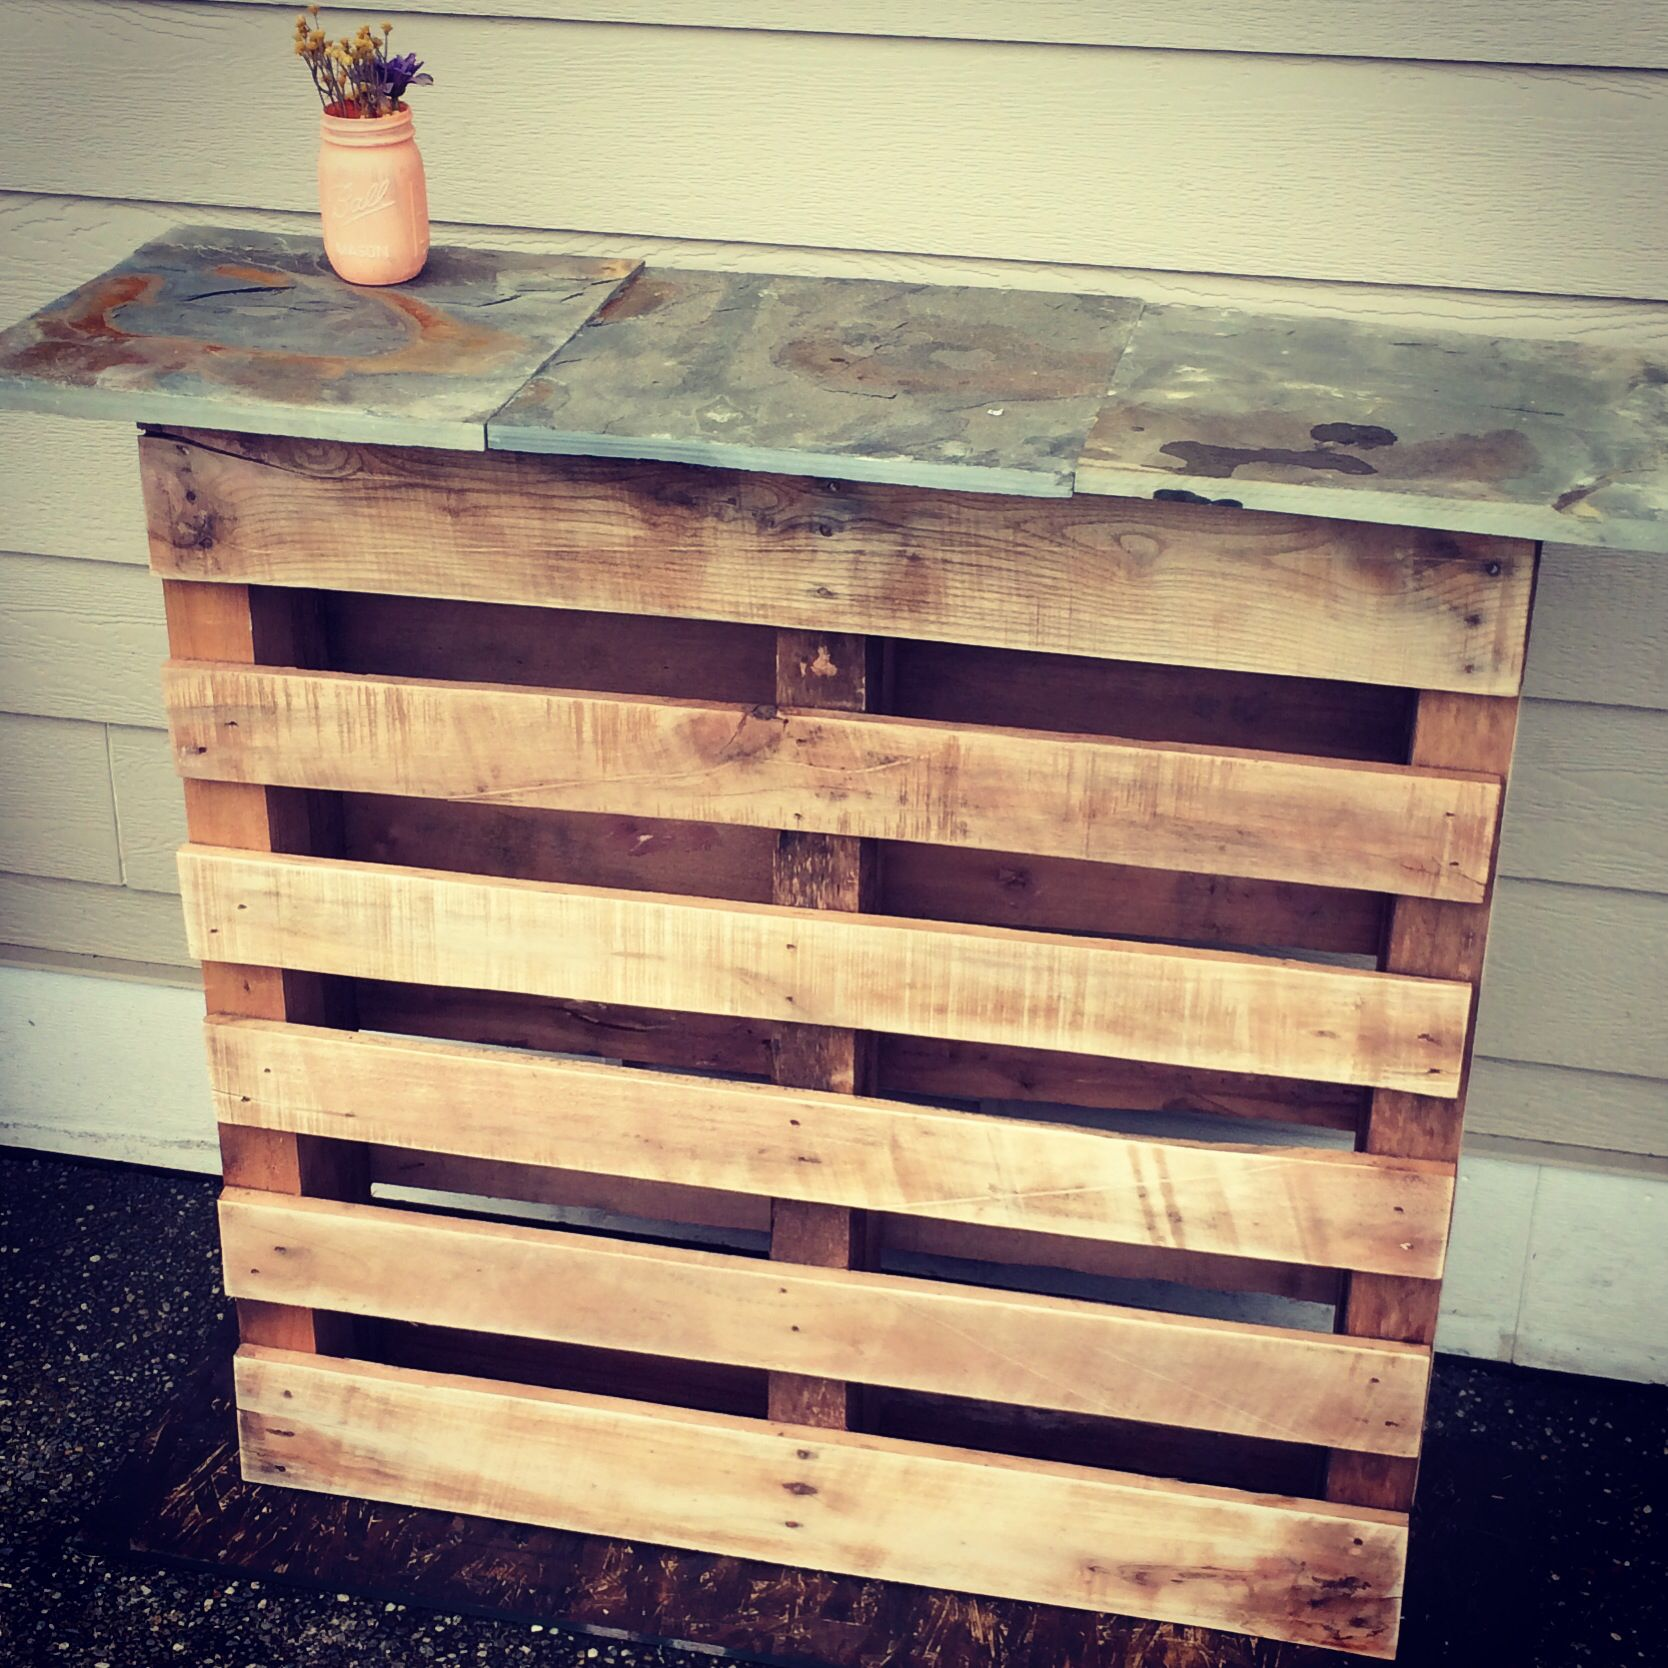 Outdoor wood pallet furniture 3 diy pallet projects with - 2 Same Pallets 3 Fancy Pavers Make A Nice Outdoor Bar I Used Painted